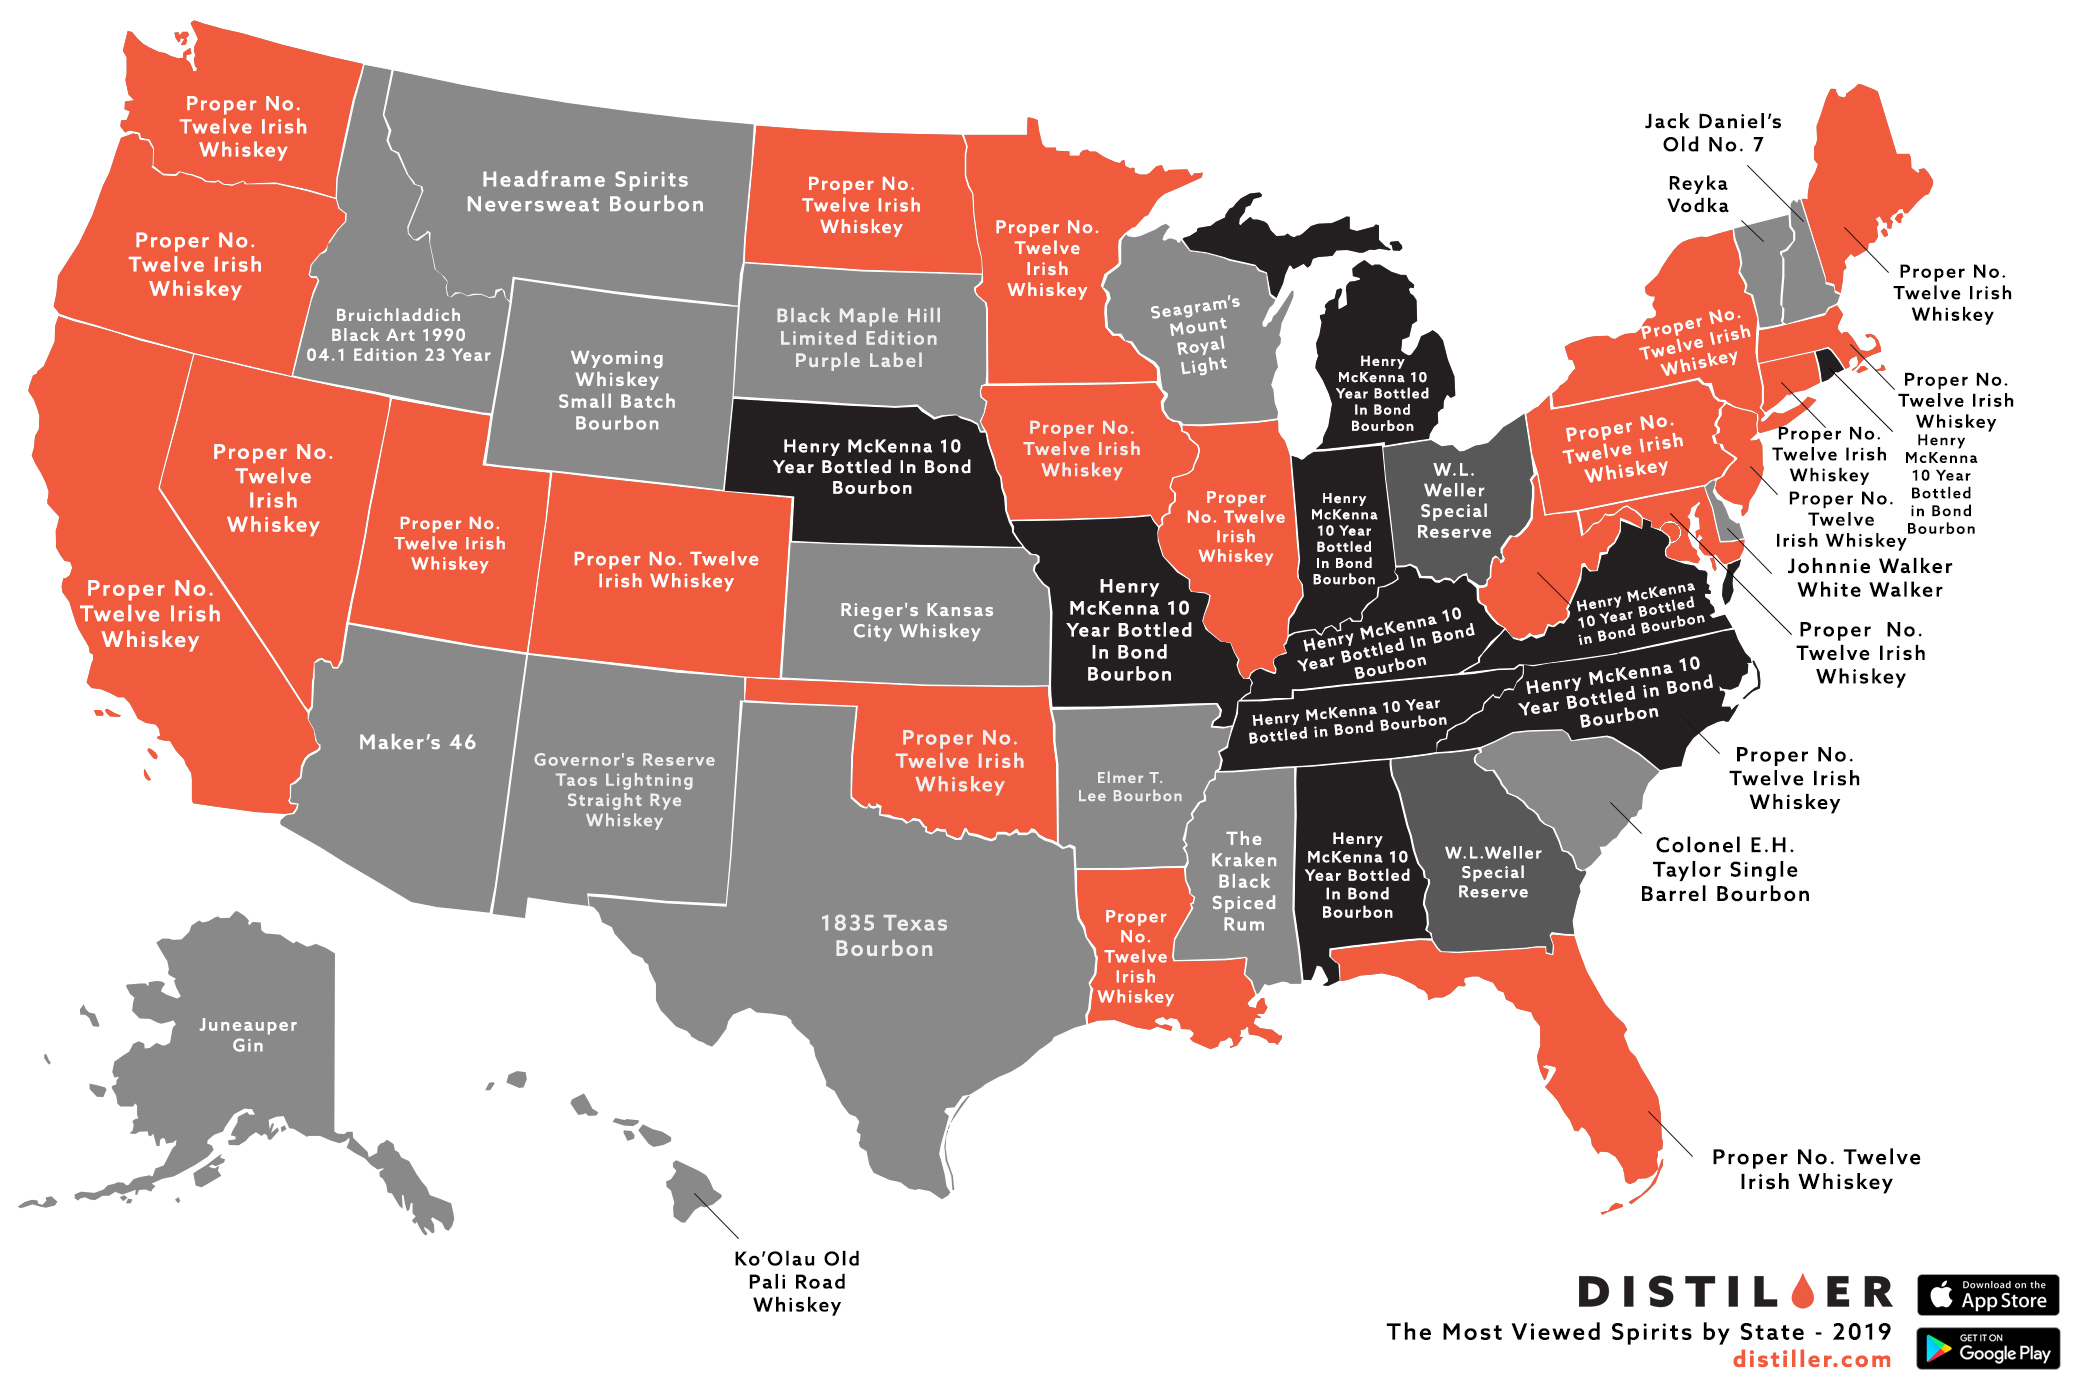 The Top Spirits By State in 2019 | Distiller